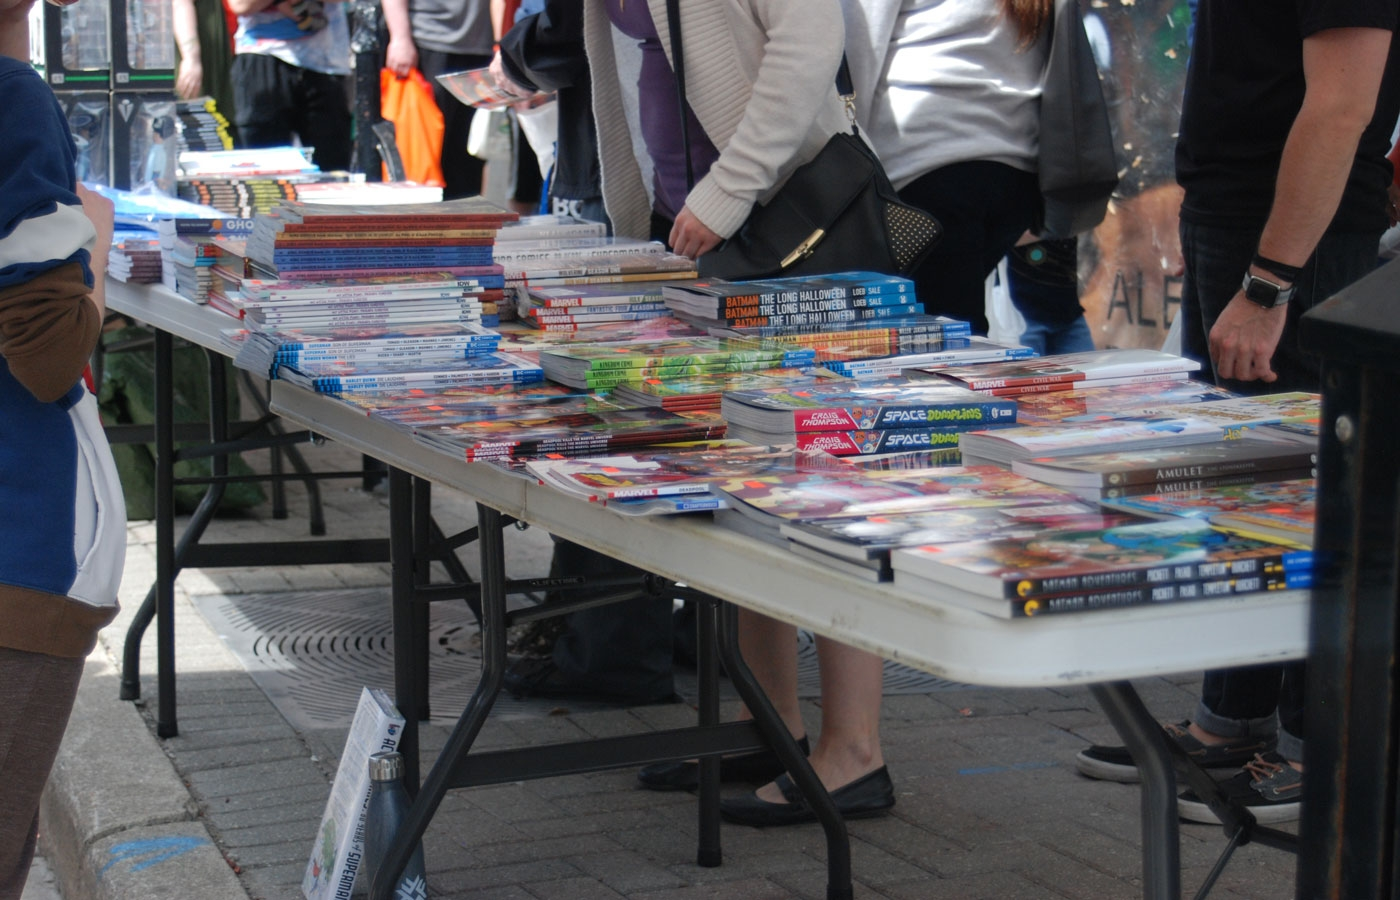 A sidewalk sale outside of Heroes Comics during Free Comic Book Day in London, ON.